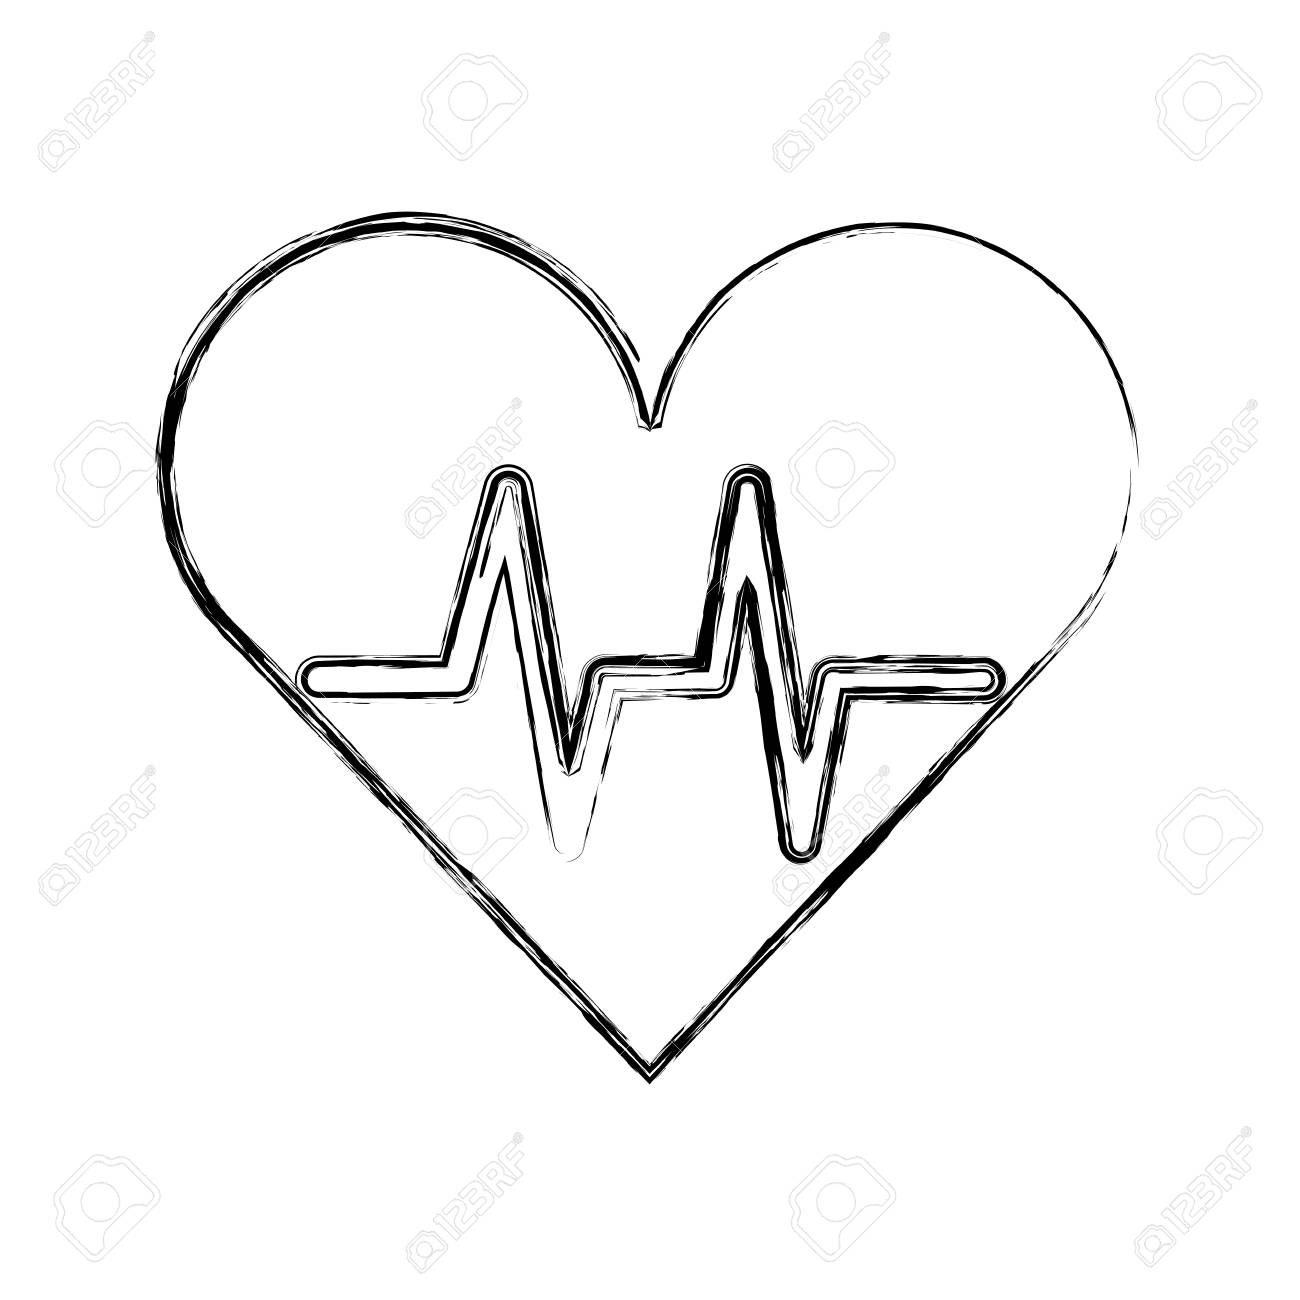 Sketch Draw Heart Beat Pulse Cartooon Vector Graphic Design Royalty Free Cliparts Vectors And Stock Illustration Image 79412913